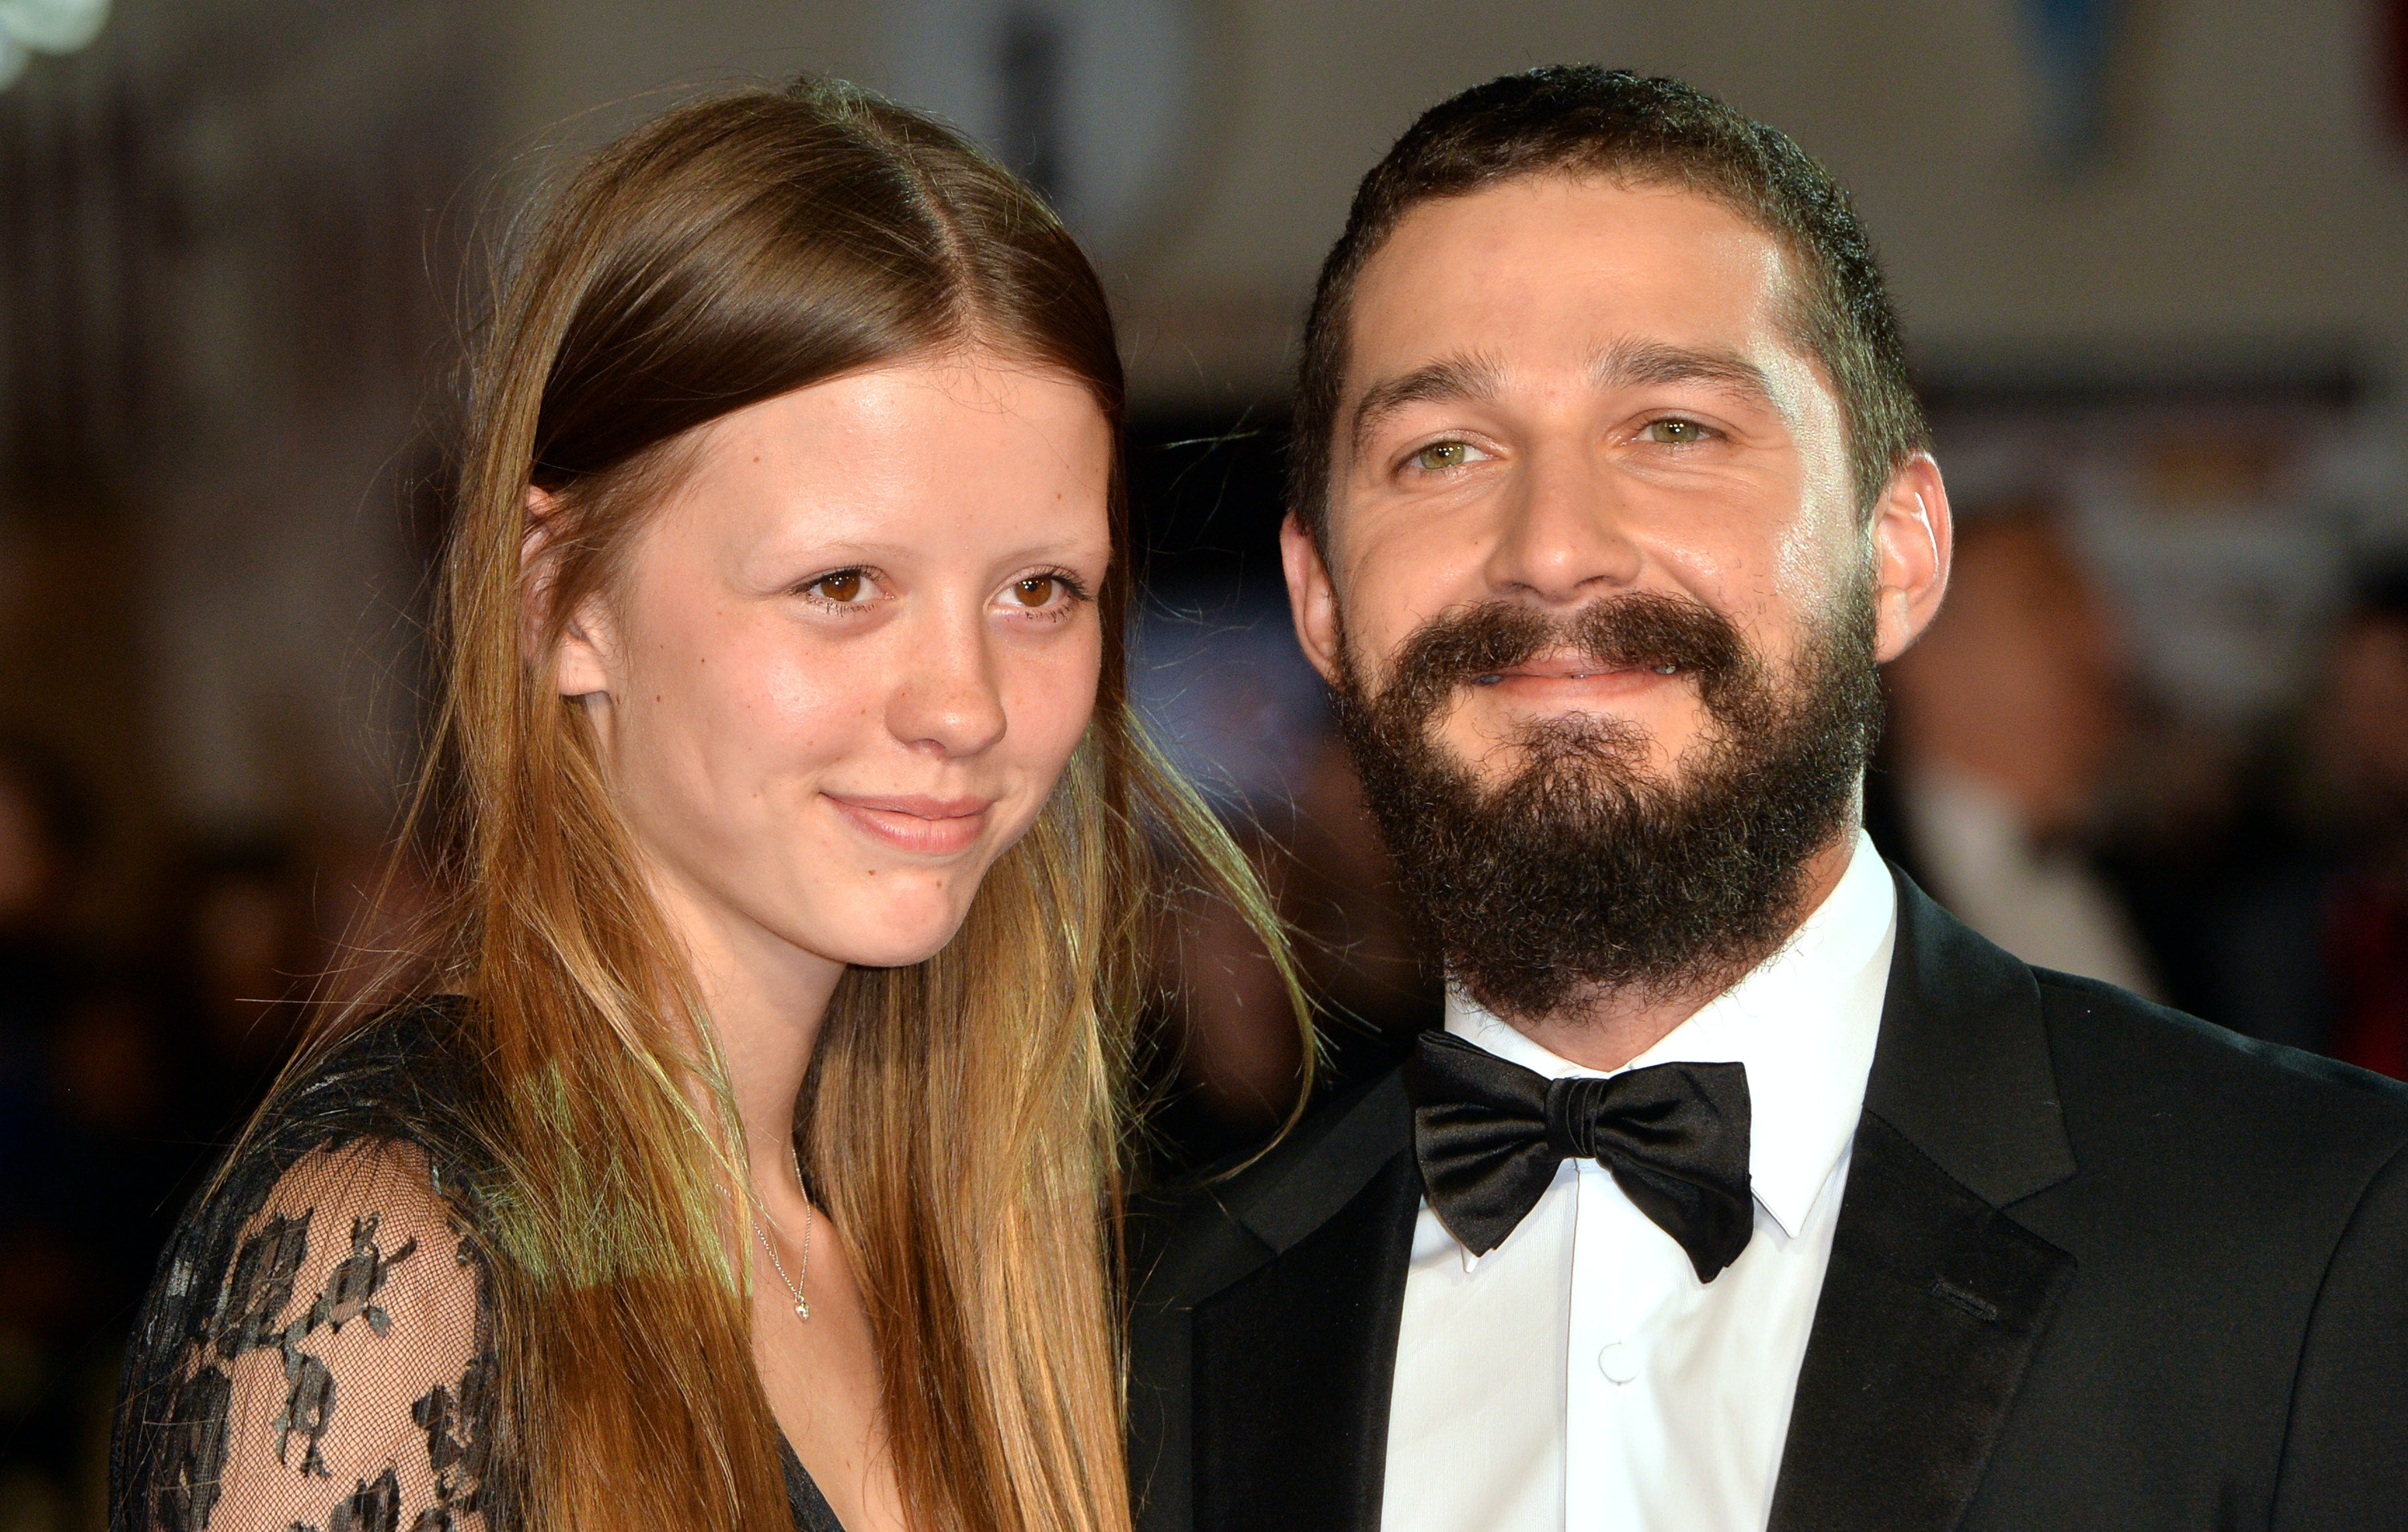 Shia LaBeouf Live Streams Las Vegas Wedding To Mia Goth!